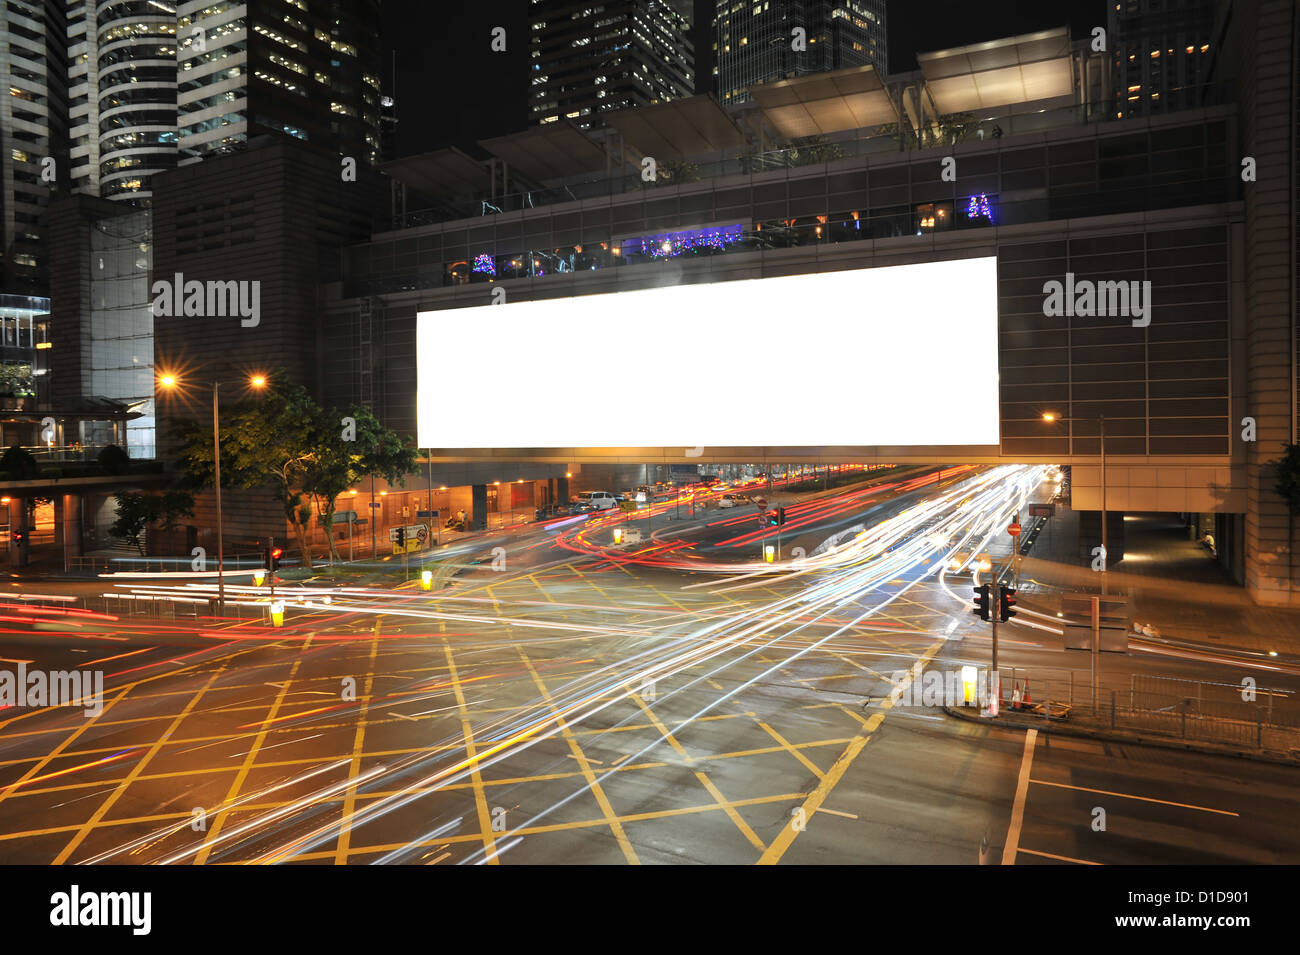 Big Empty Billboard at night in city with busy traffic - Stock Image